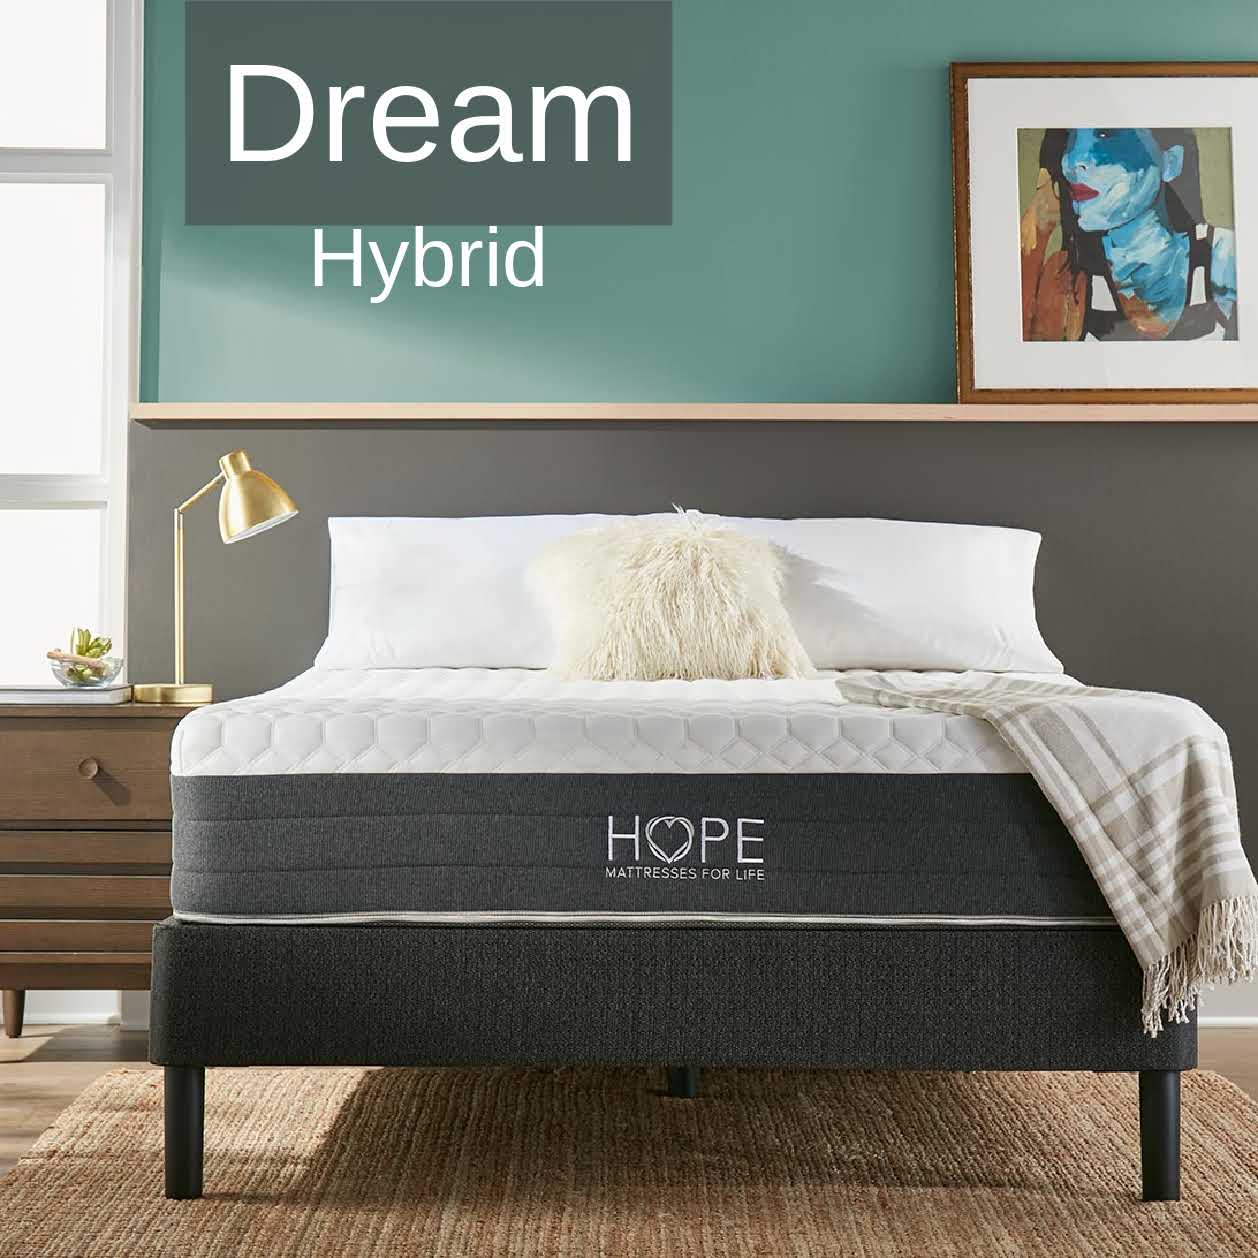 <hope signature collection, Dream Hybrid, side sleeper, stomach sleeper, back sleeper, , luxury and comfort, memory foam mattress, hybrid mattress,supportive mattress, made in the USA, CertiPUR-US certified, cooling, best mattress, free shipping,120-day trial, lifetime warranty>